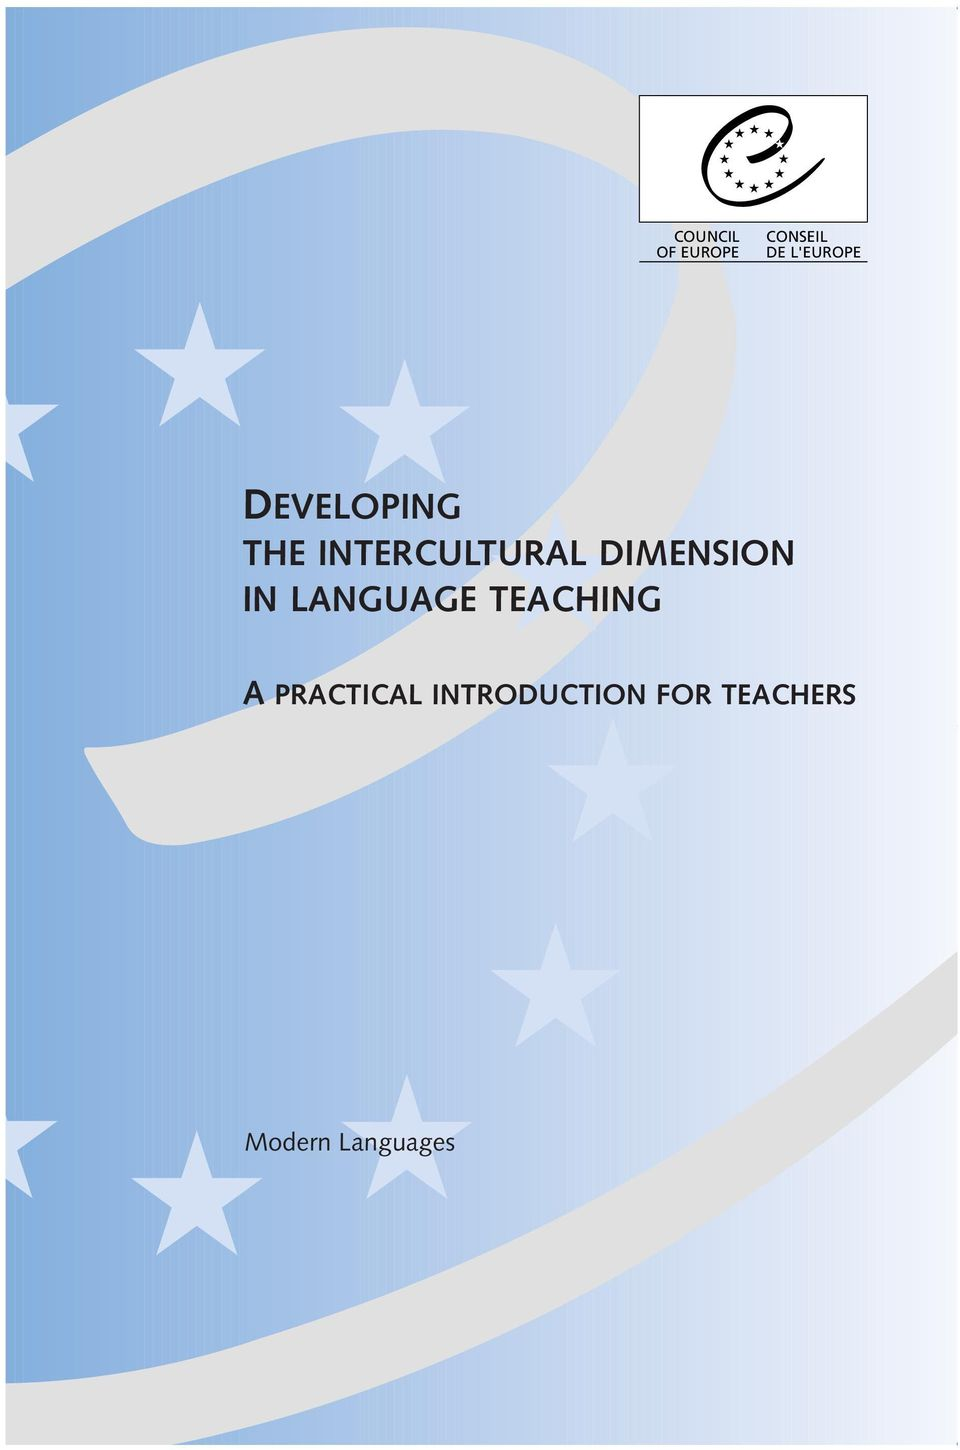 DIMENSION IN LANGUAGE TEACHING A